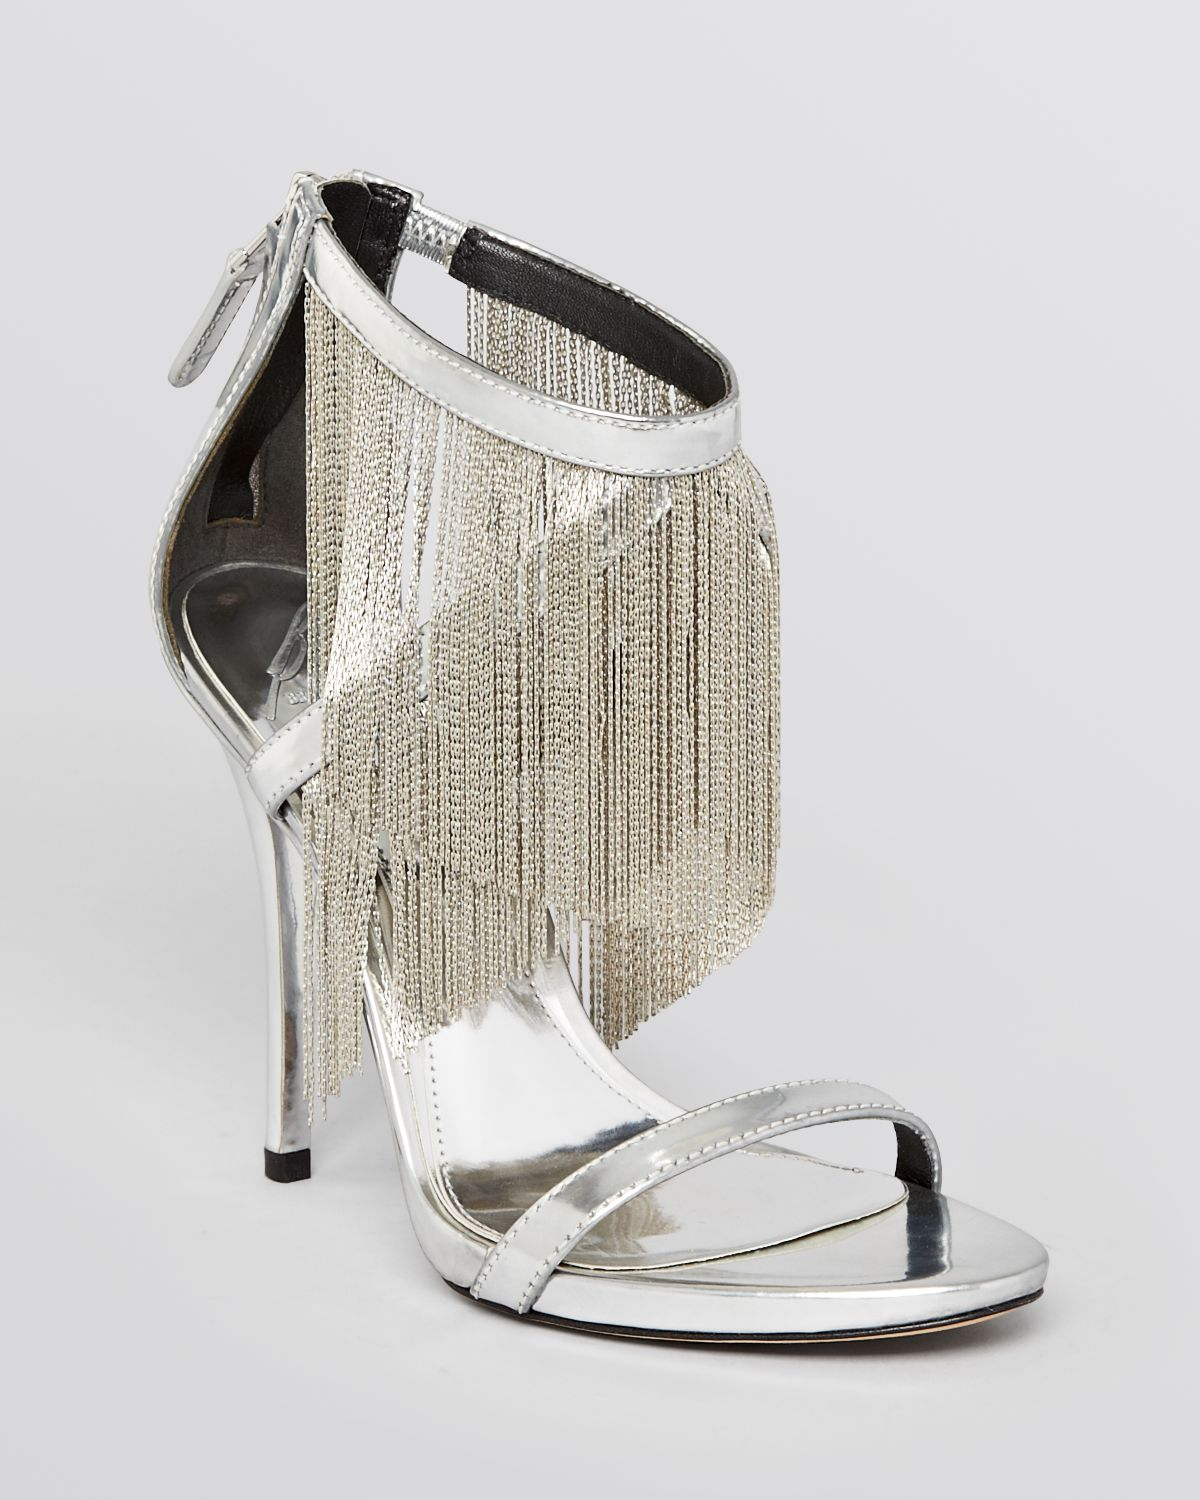 74e4131f846 Lyst - B Brian Atwood Evening Sandals Condesa Fringe High Heel in ...